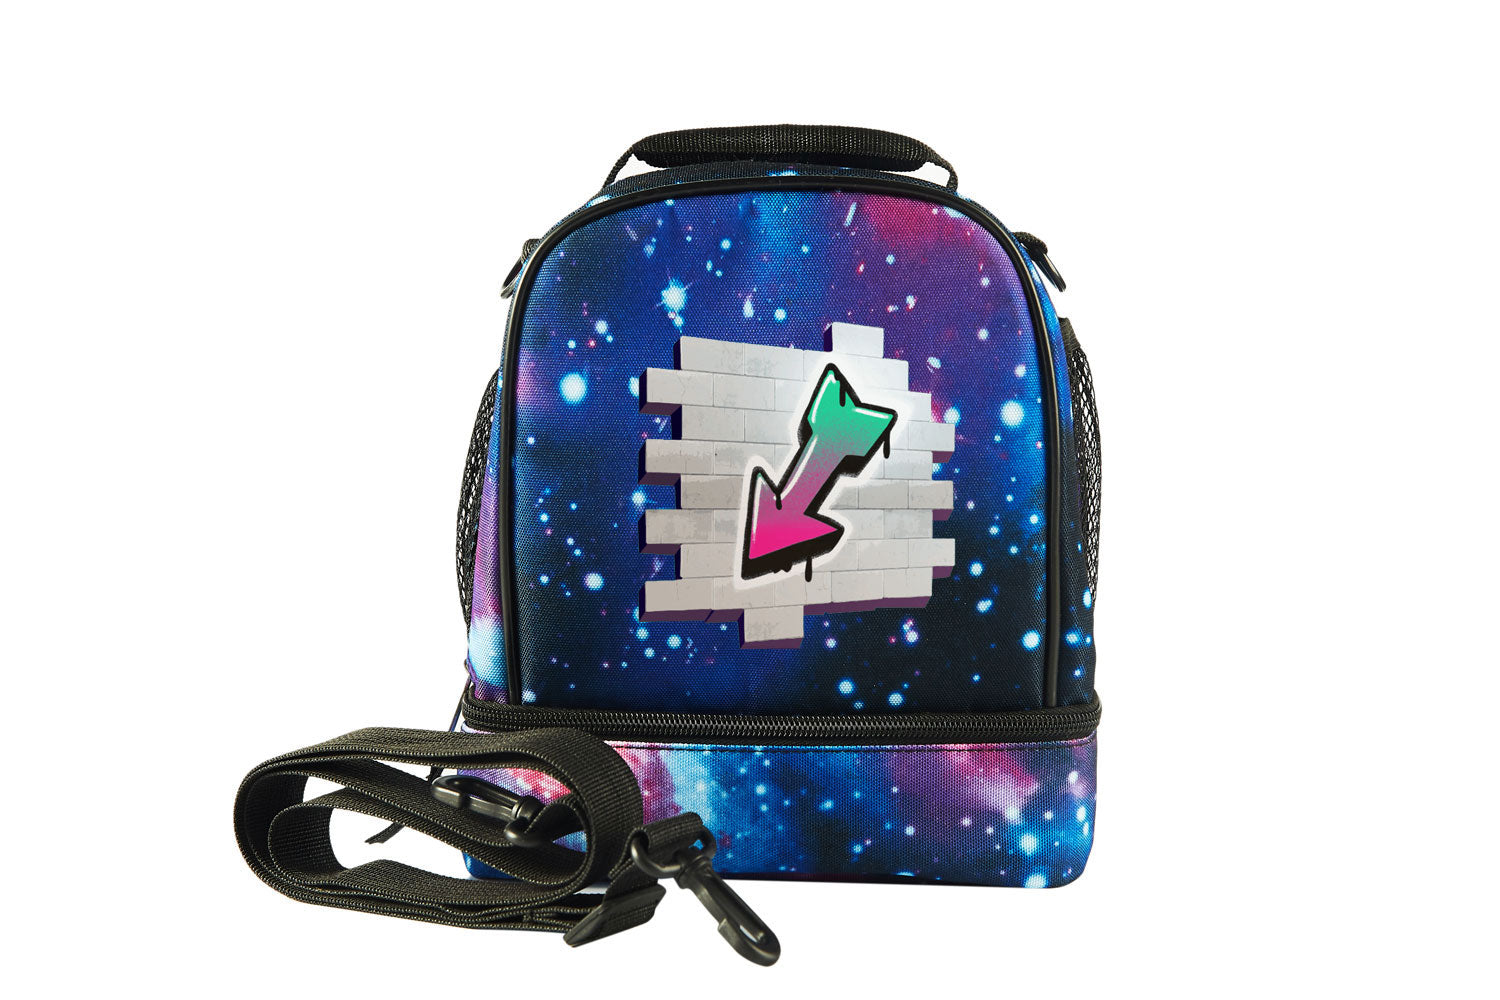 Battle Royale Sprays Arrow Starry Sky Two Compartment Lunch Bag